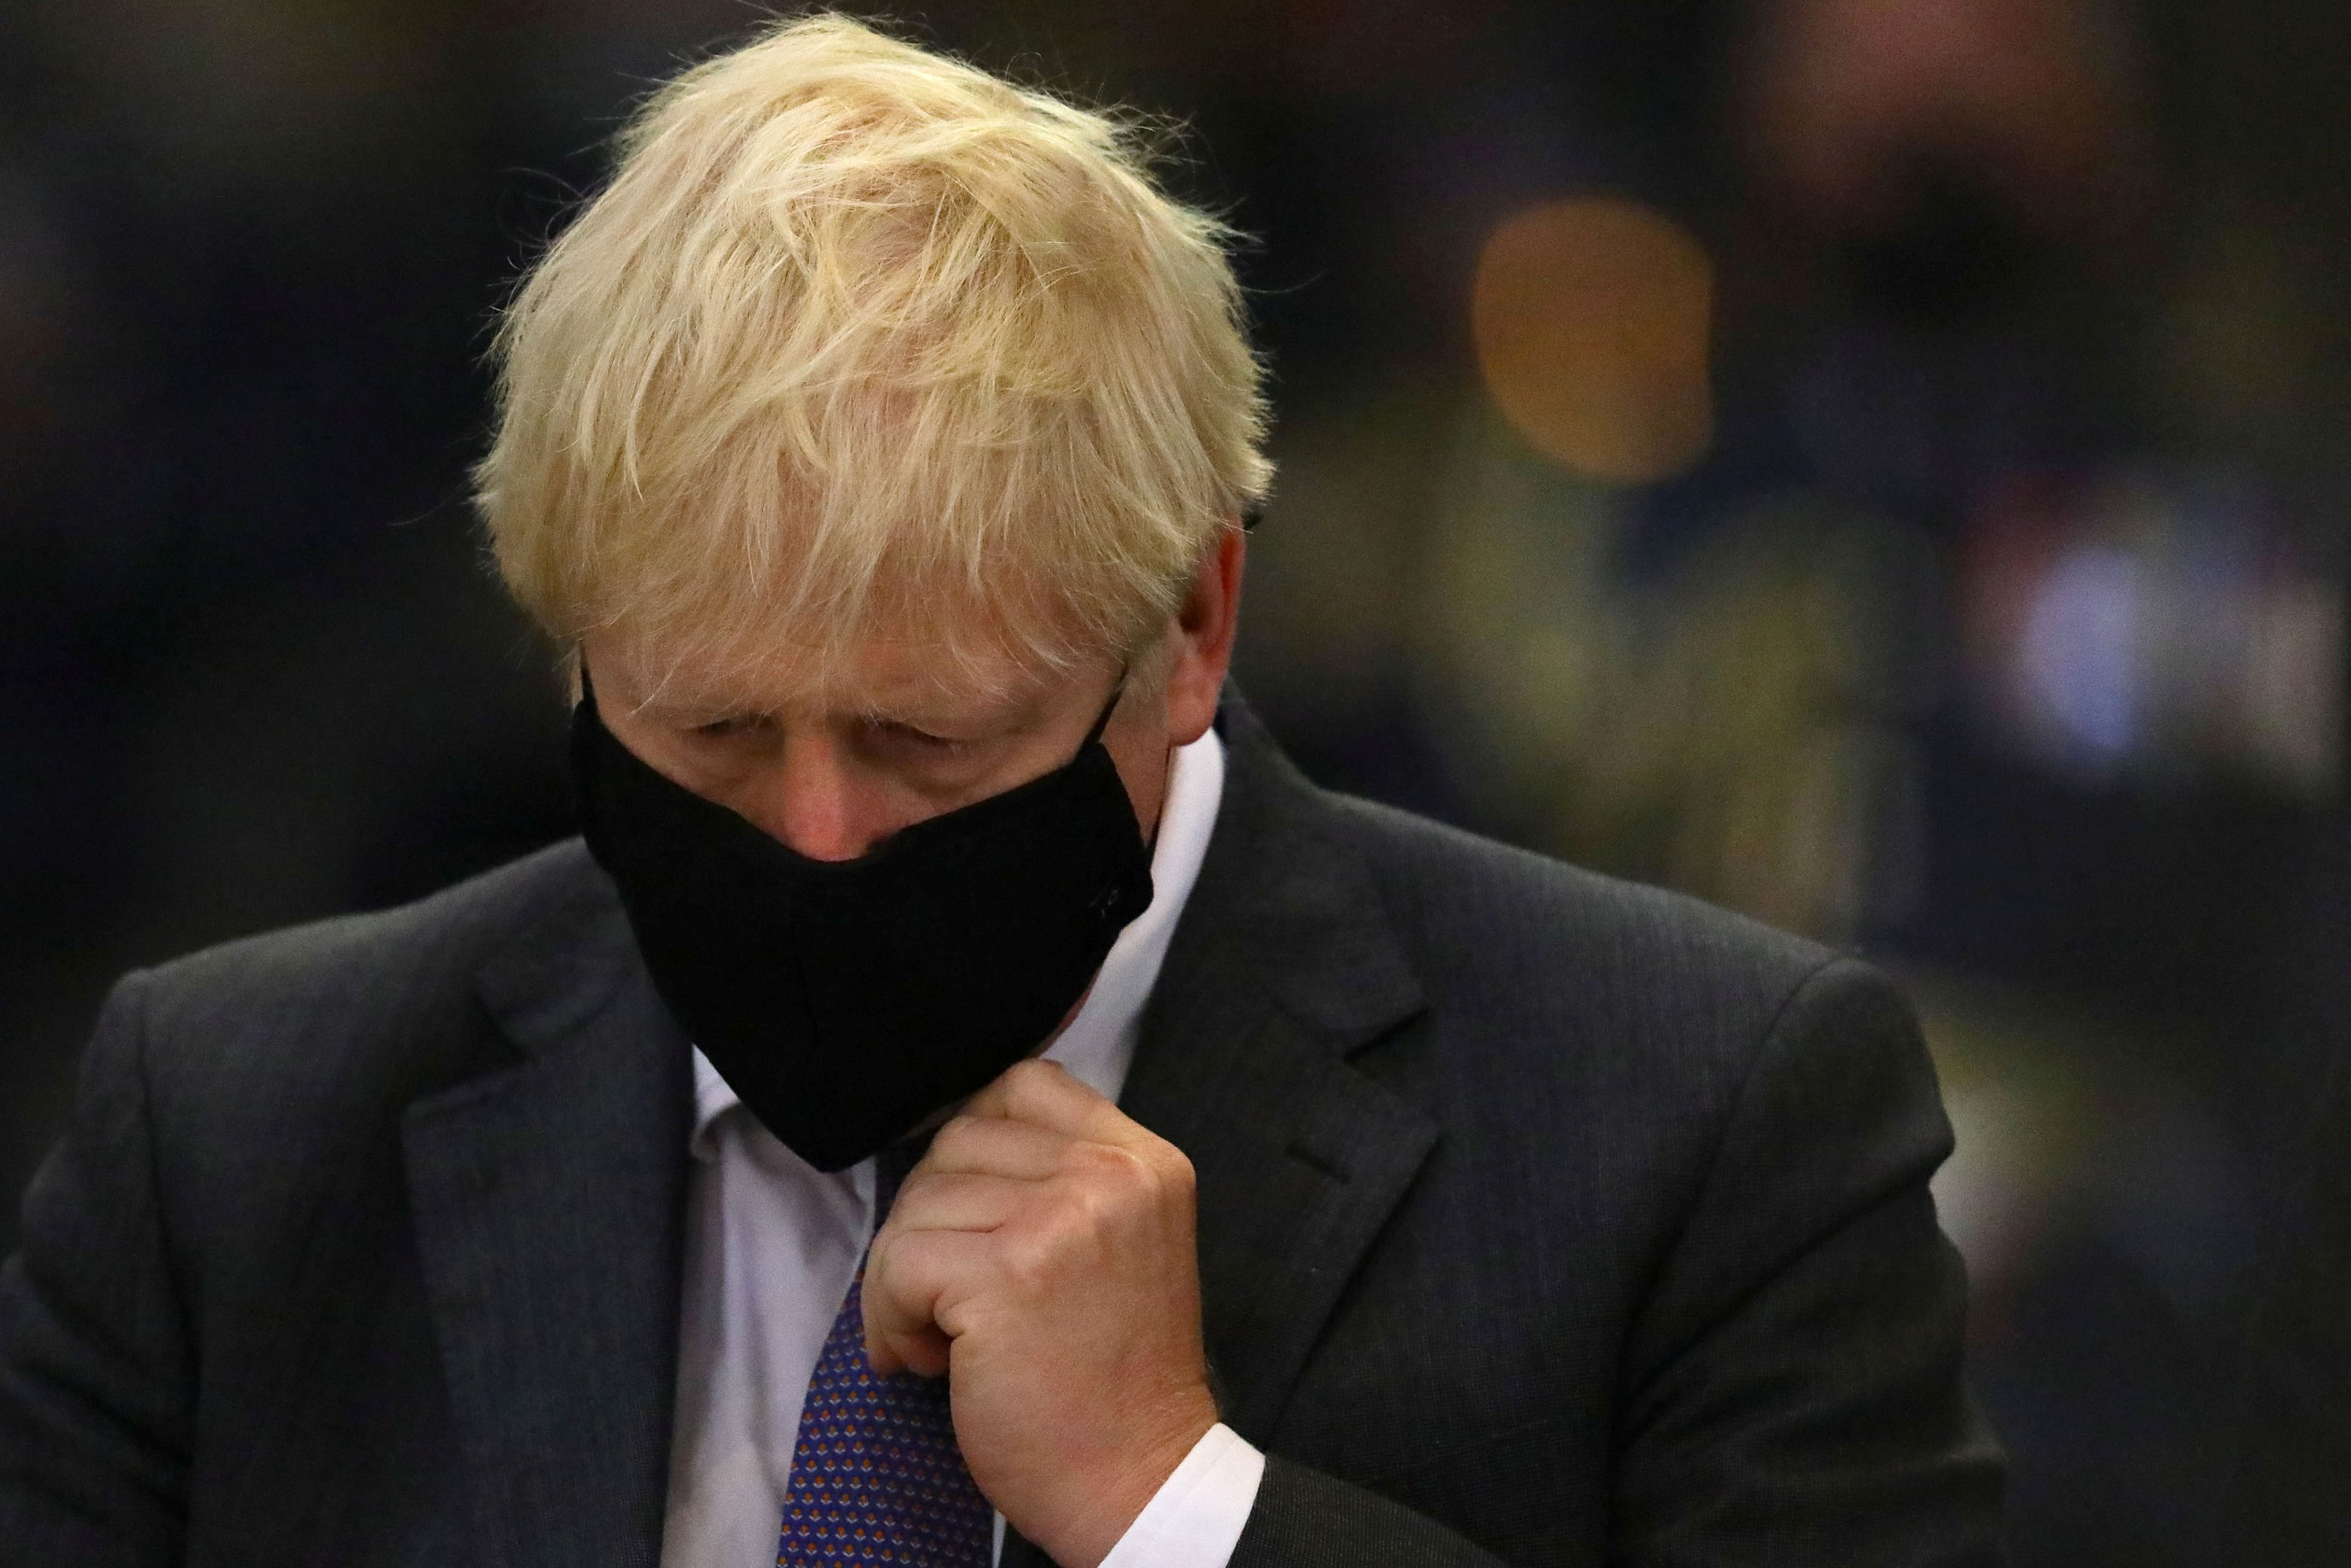 Britain is facing a national crisis. Boris Johnson is running out of time